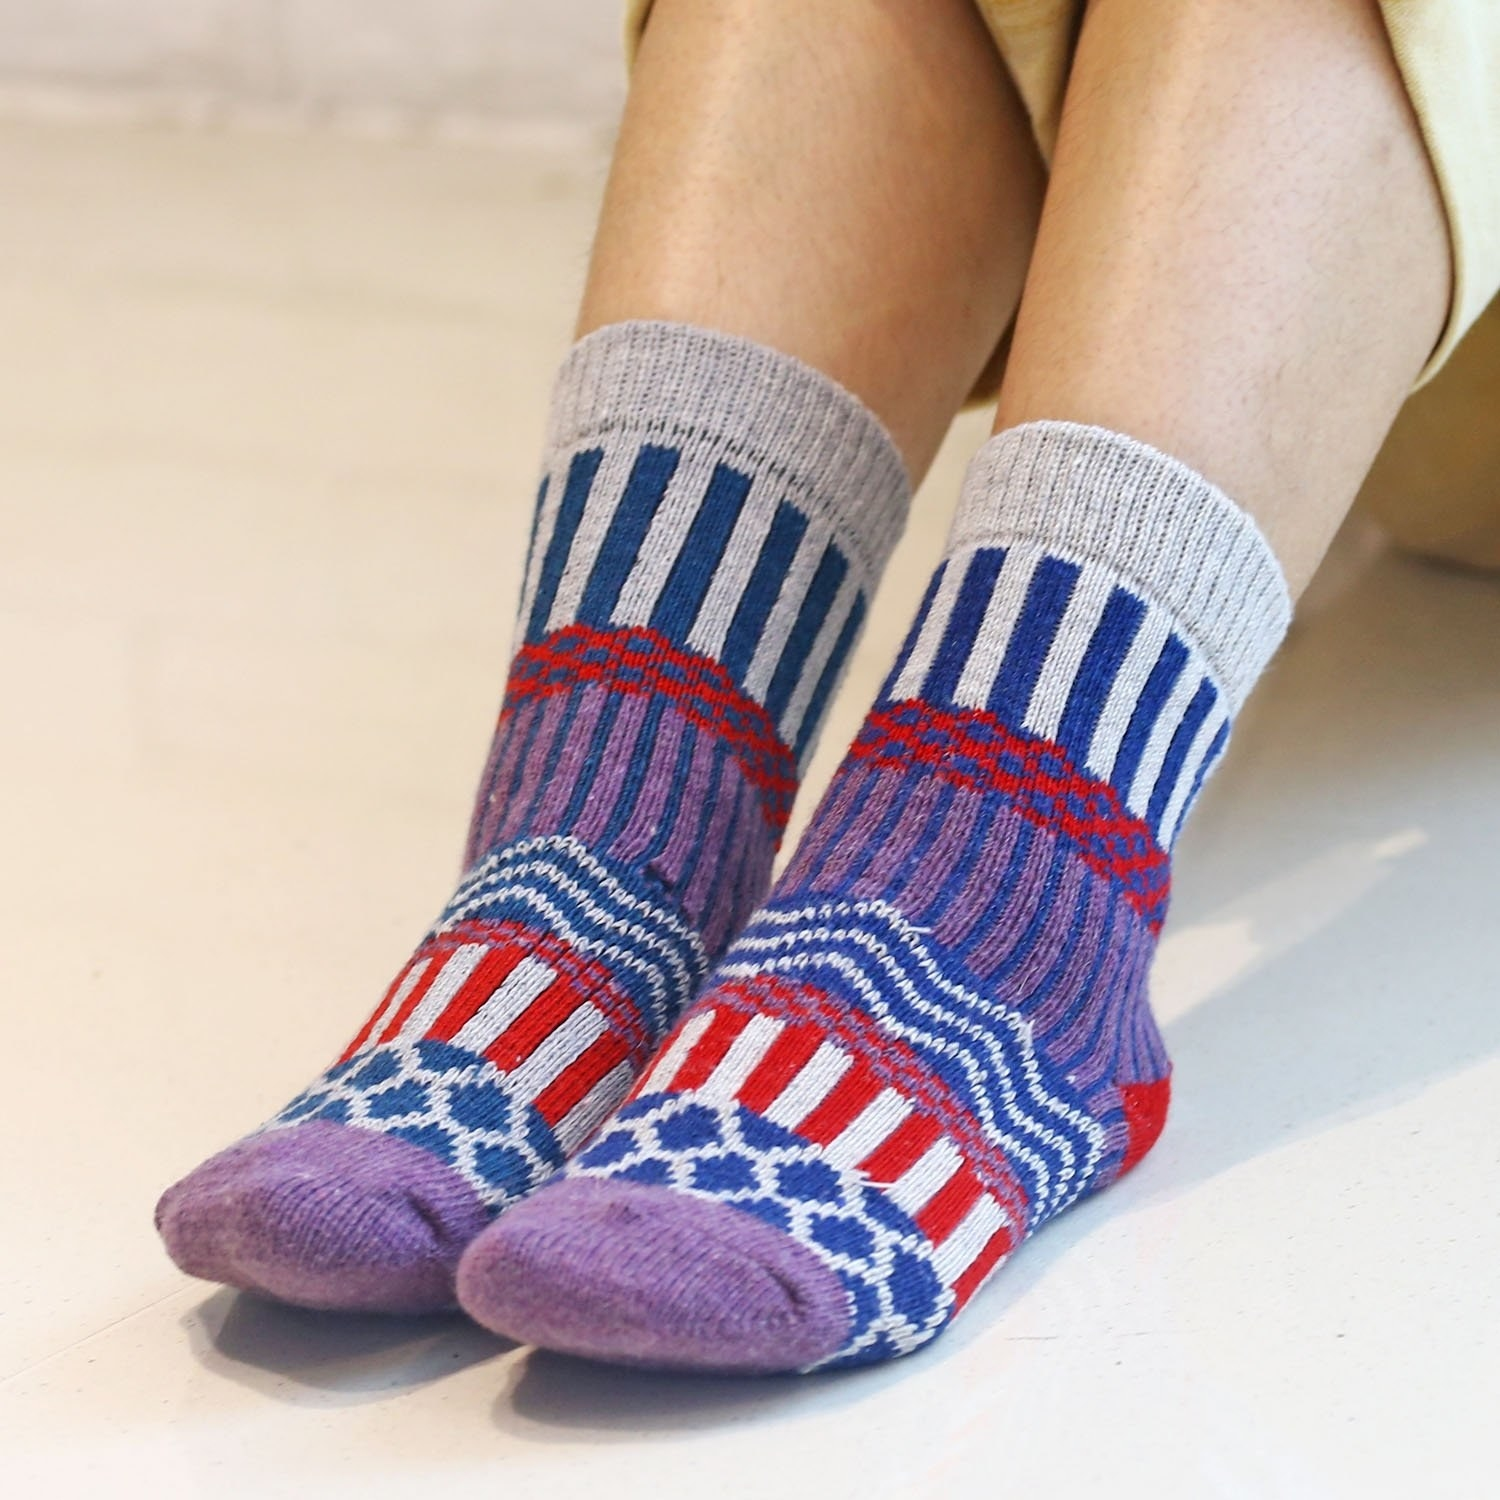 "Promising review: ""Really like these socks! They are substantial, soft, and comfy, but aren't too thick or heavy. (BTW I ordered a different brand of patterned socks along with these last year, and those feel more synthetic-y, tighter, and thinner, in contrast to these nice, soft cotton-and-wool ones, so I'm ordering two more boxes of these.) I like the fun, pretty look of these a lot and was tickled that a bunch of much younger gals in a dance class I wore them to kept saying how much they liked them. I wear a 7.5 or 8 shoe, and these fit perfectly. I wore and washed them a lot all last winter (they became my go-to socks, which is why I'm buying more), and the fabric, colors, texture, etc., are still like new."" —JeanPrice: $12.99 (for a 4-pack)"